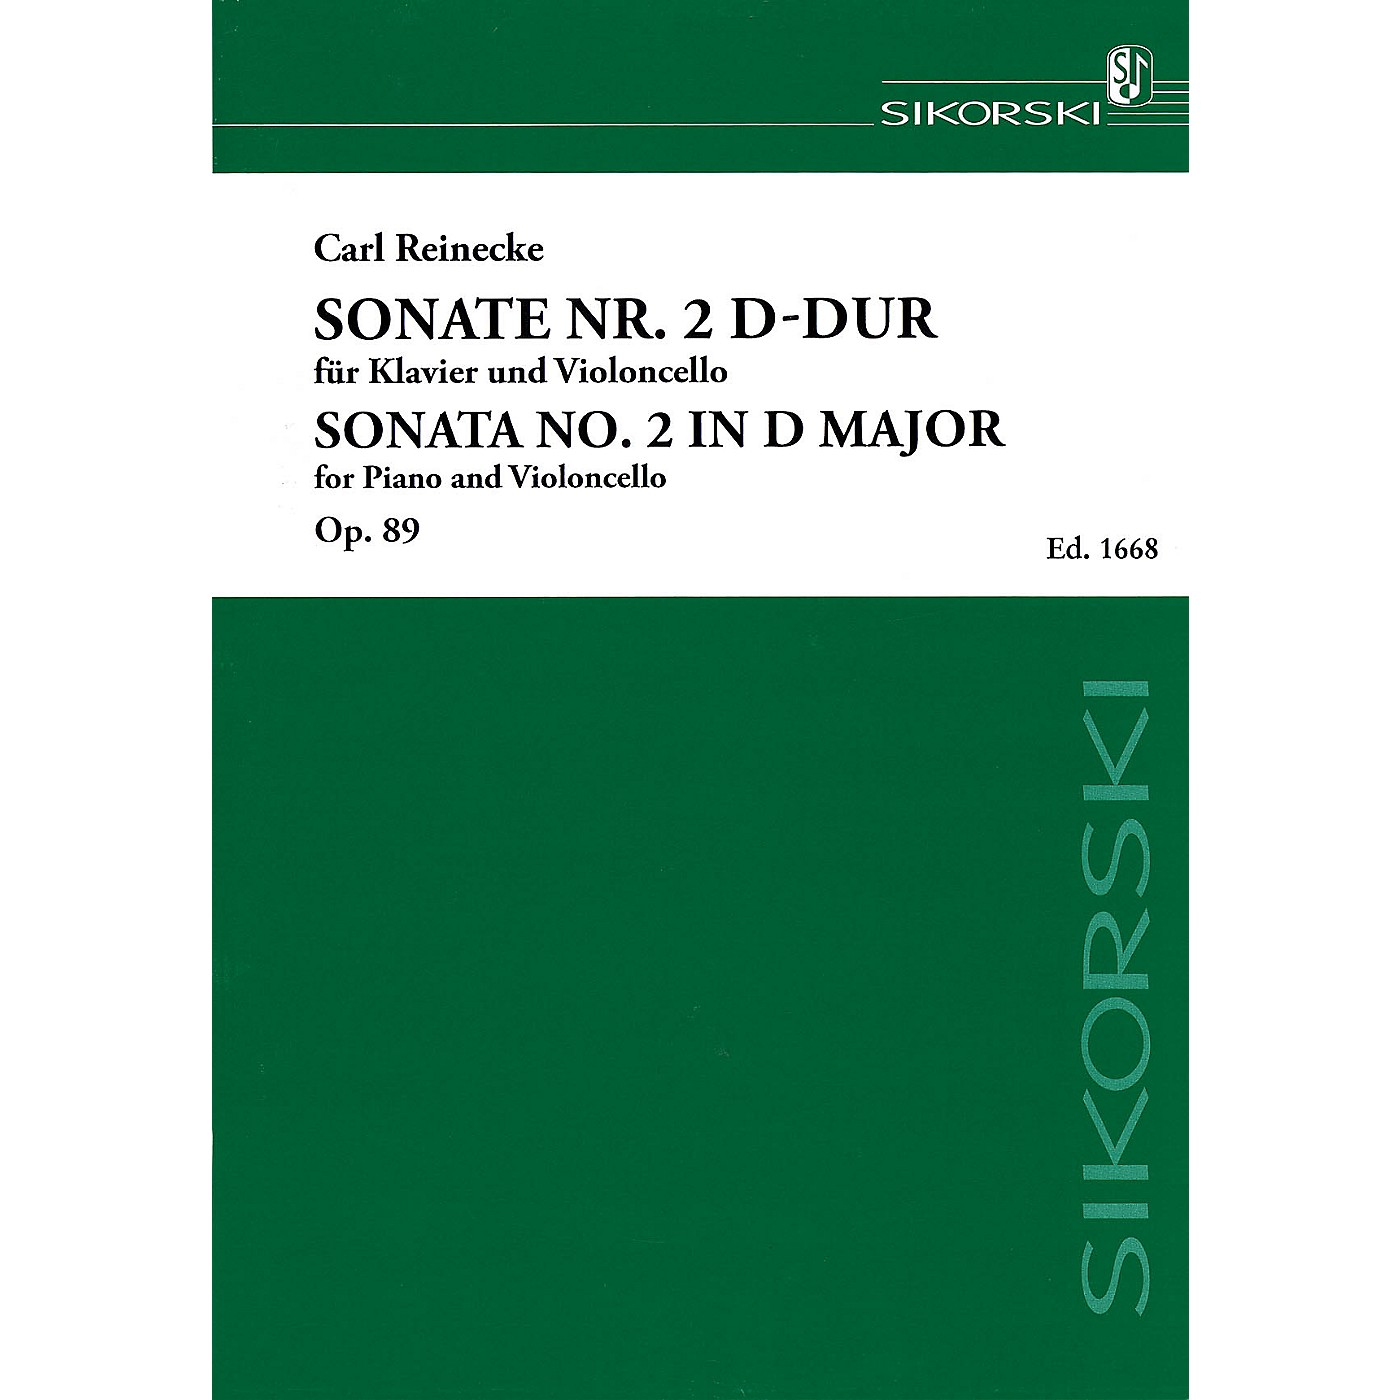 Sikorski Sonata No. 2 in D Major, Op. 89 (Piano and Violoncello) String Series Softcover Composed by Carl Reinecke thumbnail